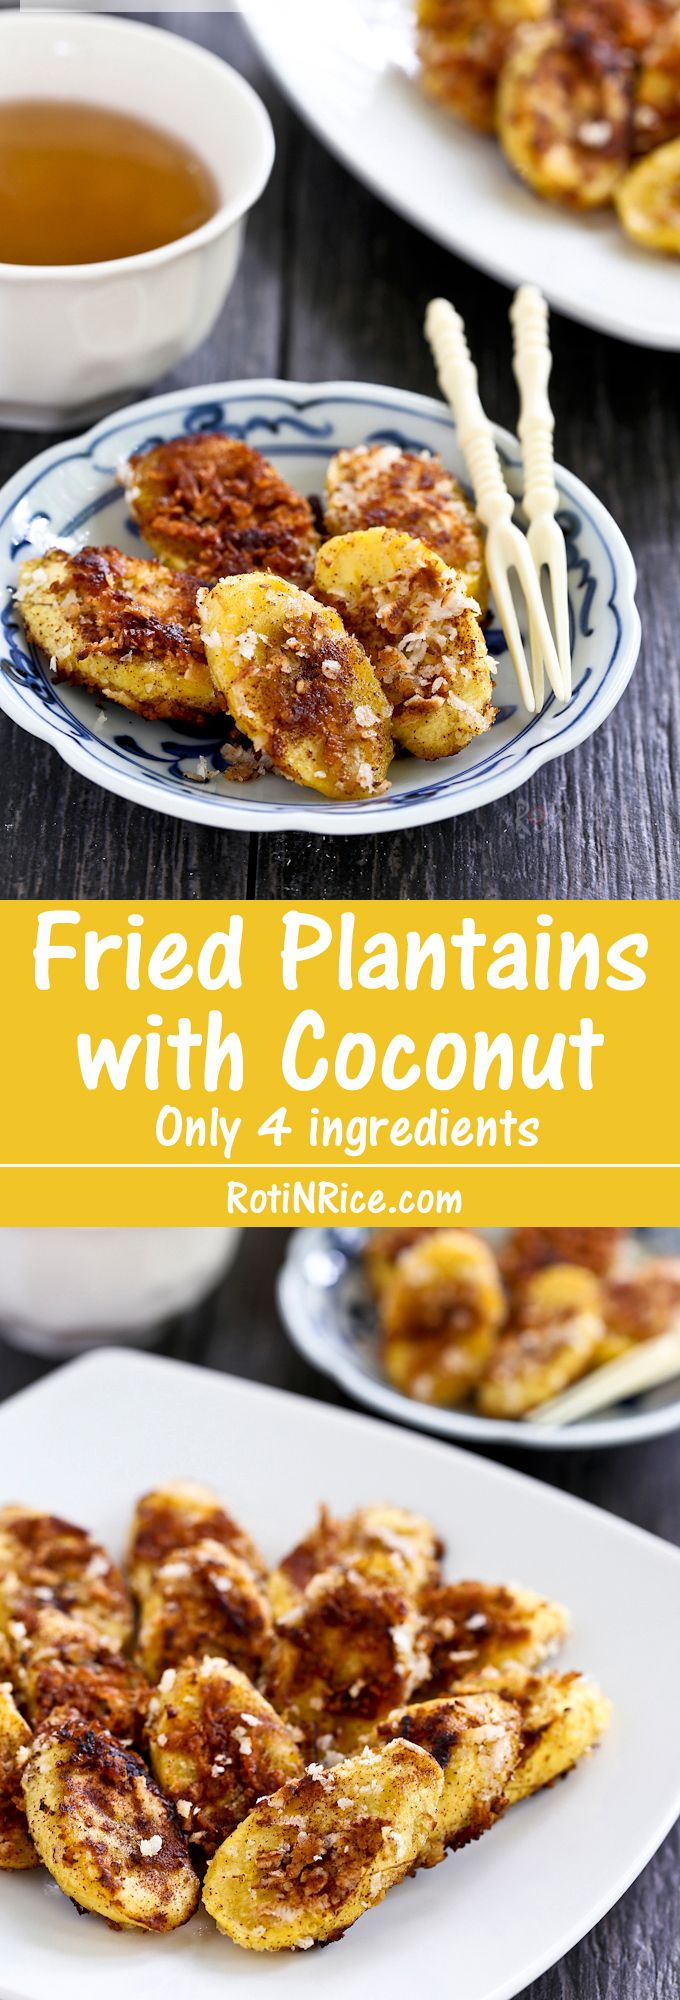 Quick and easy Fried Plantains with Coconut using only 4 ingredients. Takes under 20 minutes and is perfect for afternoon snack or tea time. | Food to gladden the heart at RotiNRice.com